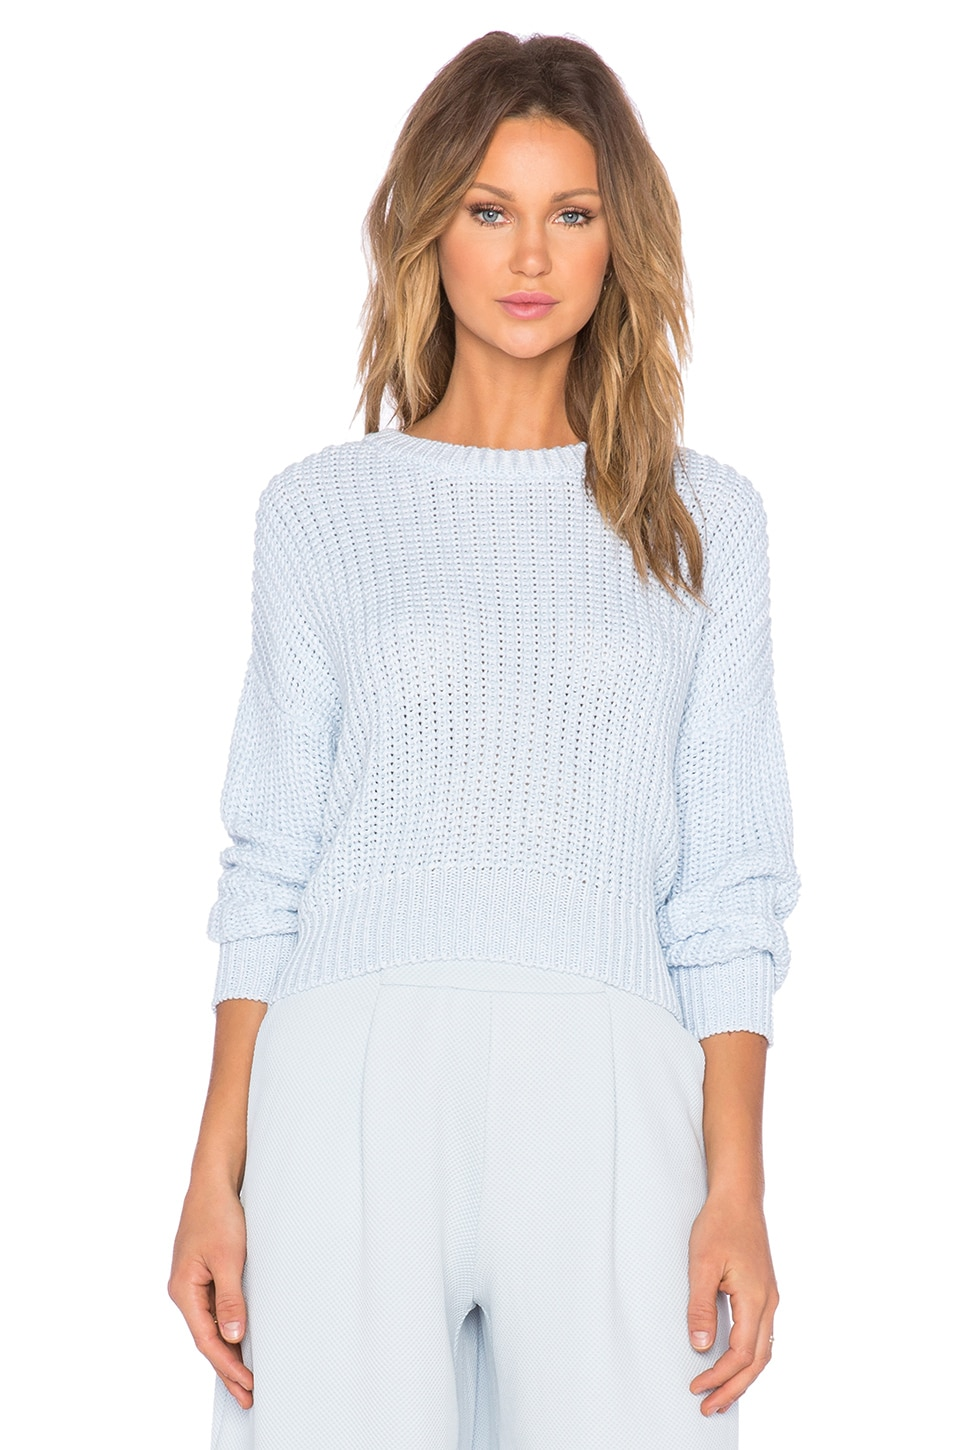 The Fifth Label Daylight Knit Sweater in Powder Blue & White | REVOLVE